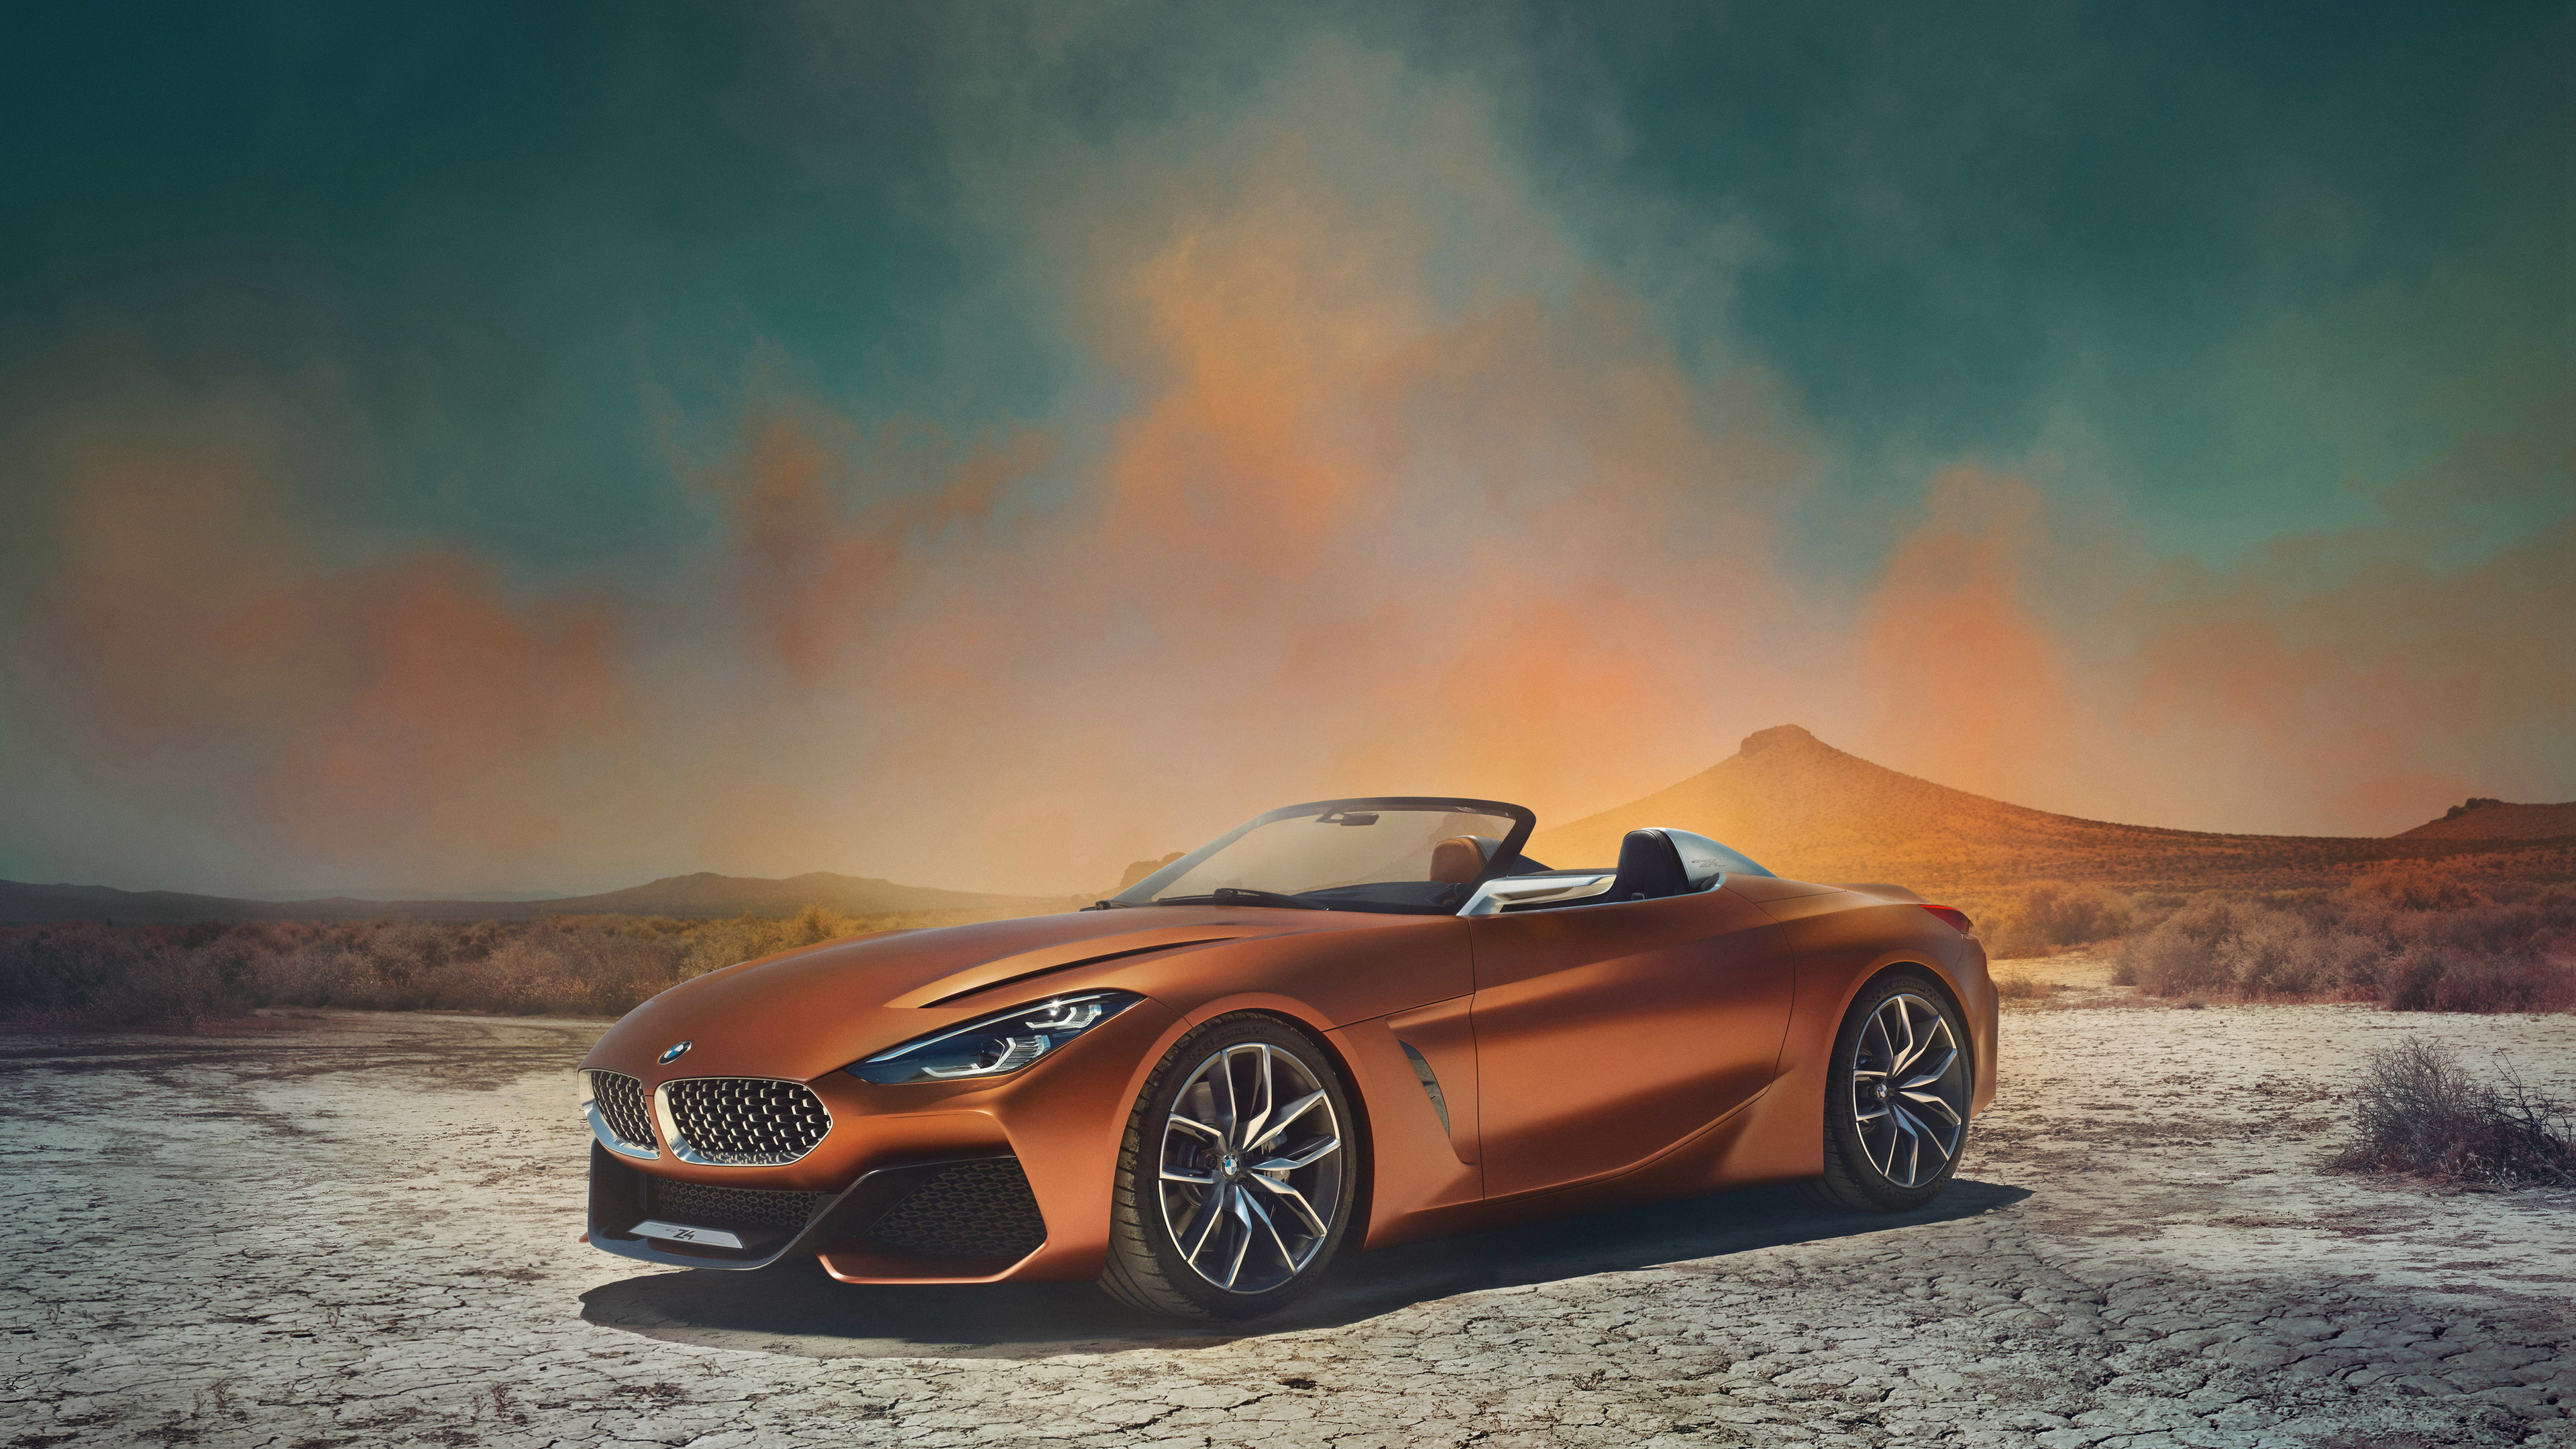 bmw concept z4 2017 1539106971 - Bmw Concept Z4 2017 - hd-wallpapers, concept cars wallpapers, cars wallpapers, bmw wallpapers, bmw concept z4 wallpapers, 4k-wallpapers, 2017 cars wallpapers